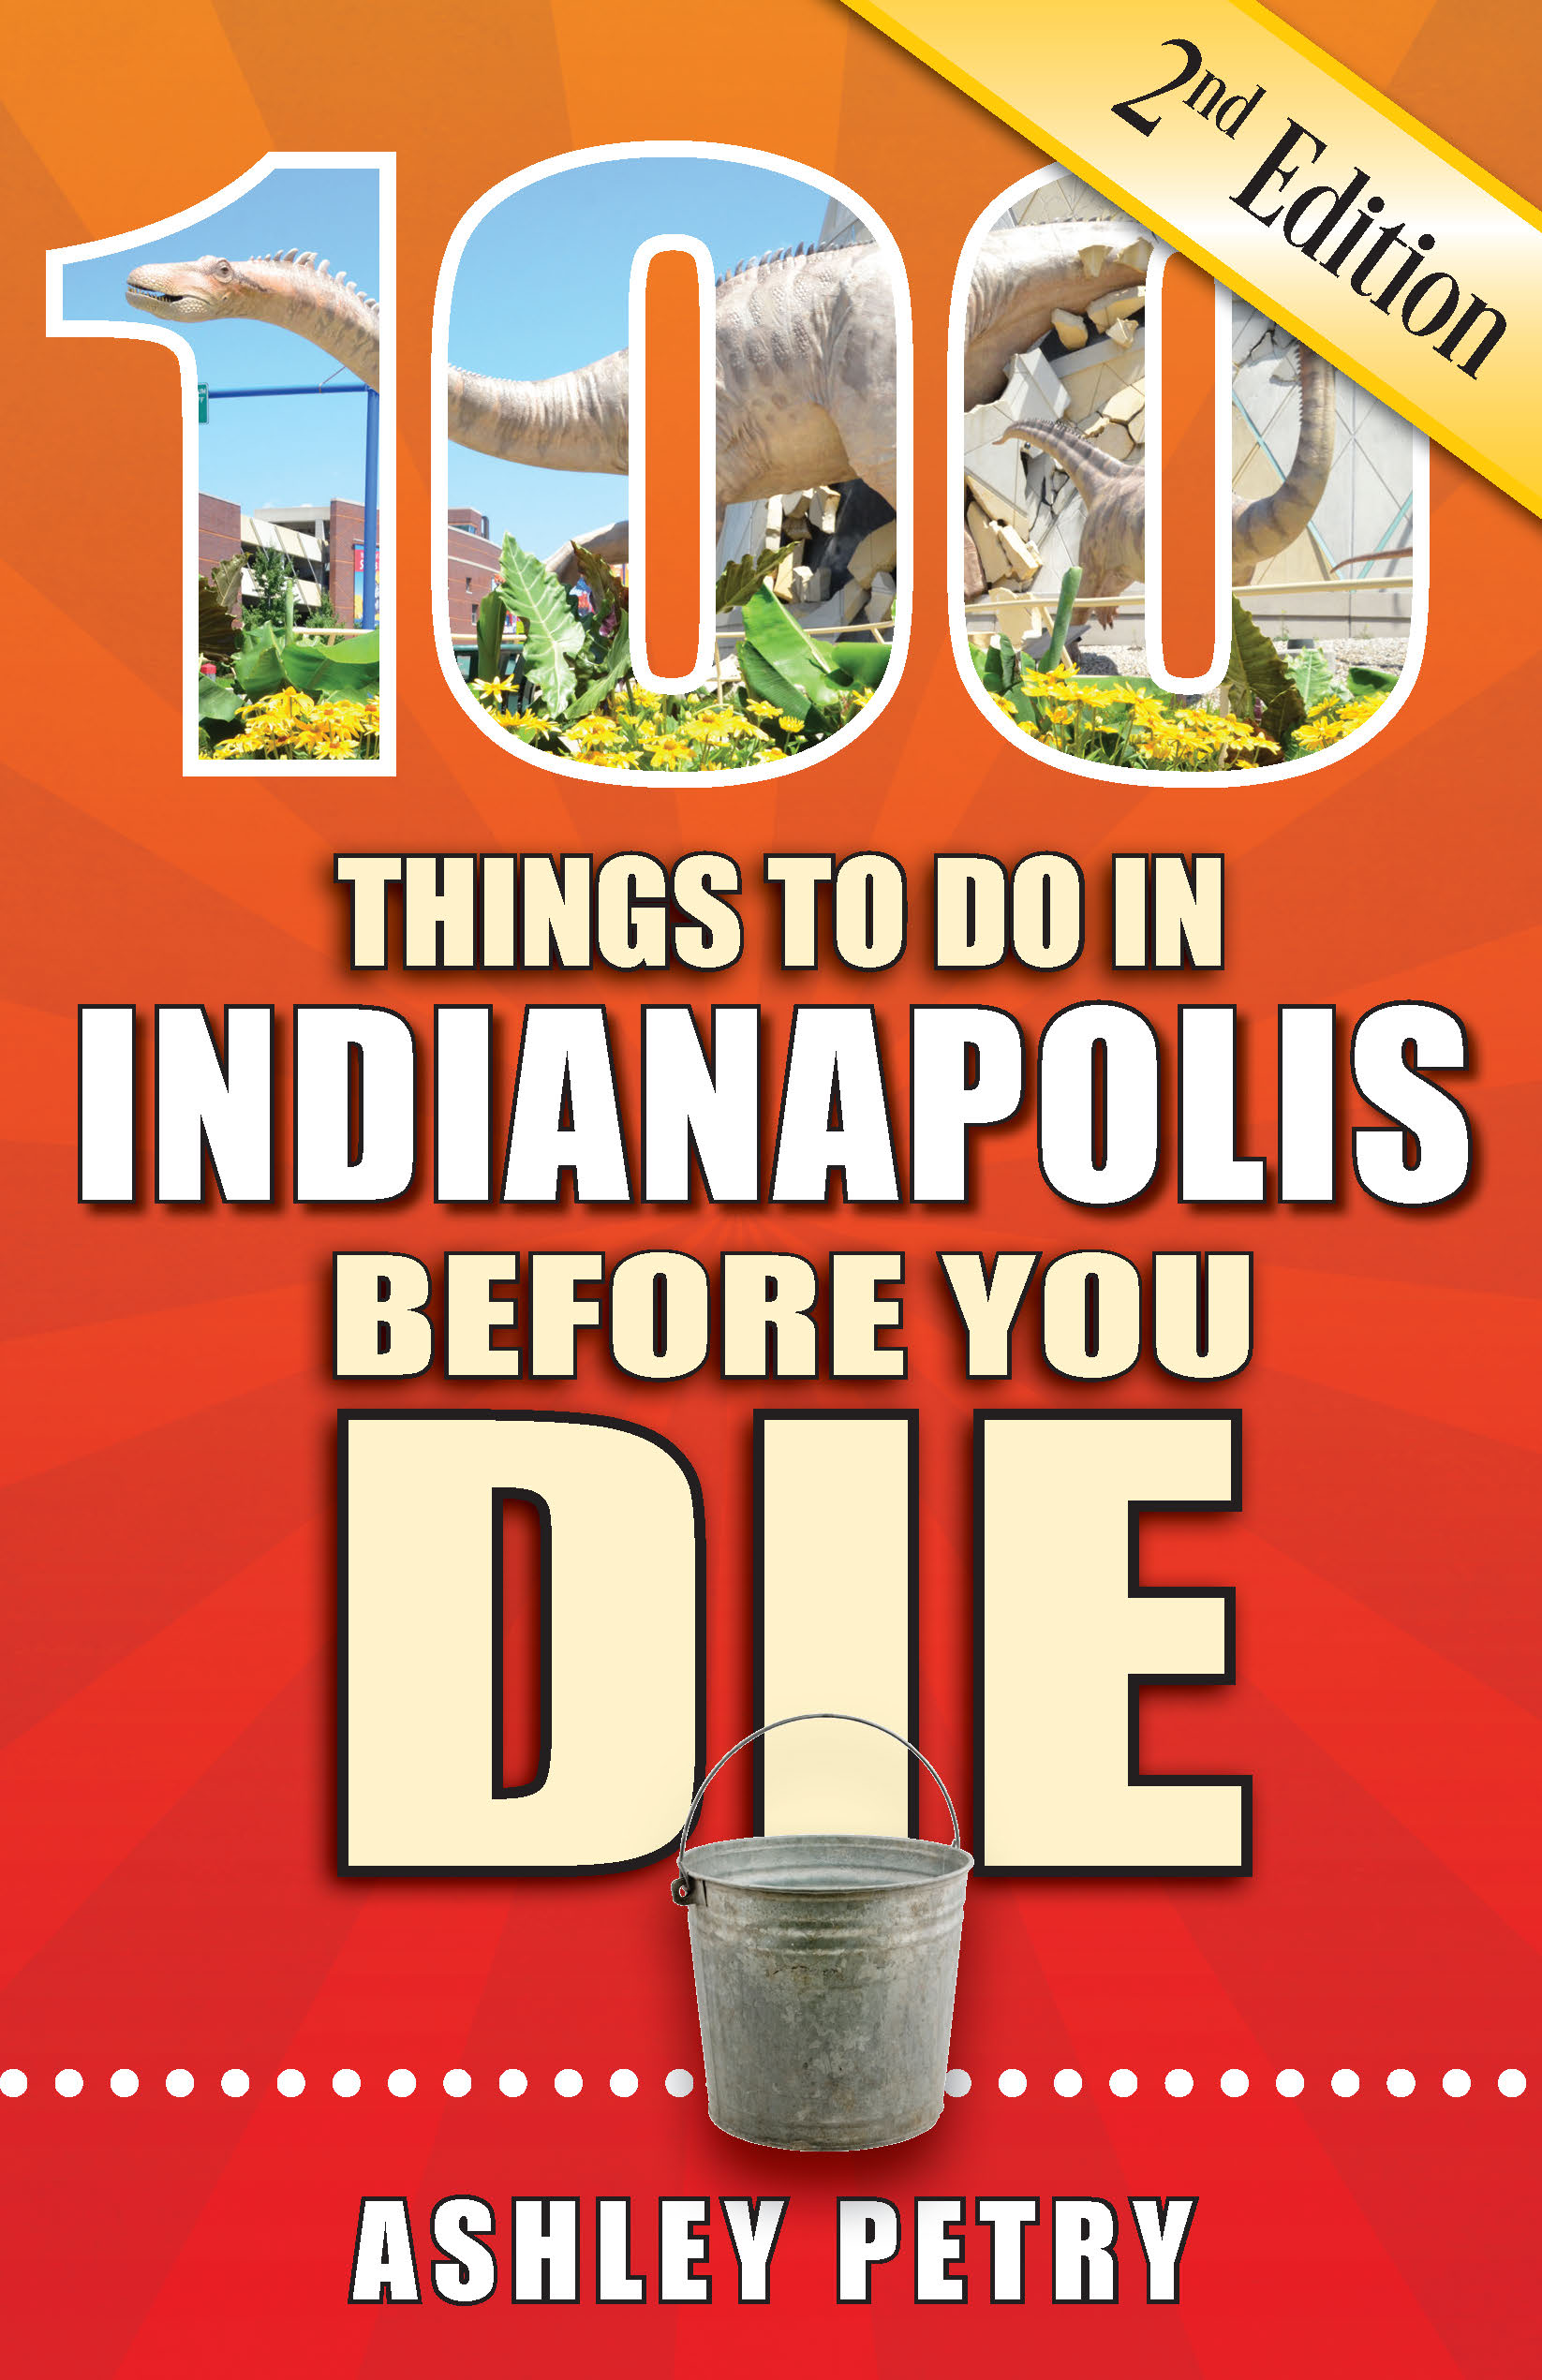 100 Things to Do in Indianapolis Before You Die (2nd edition)